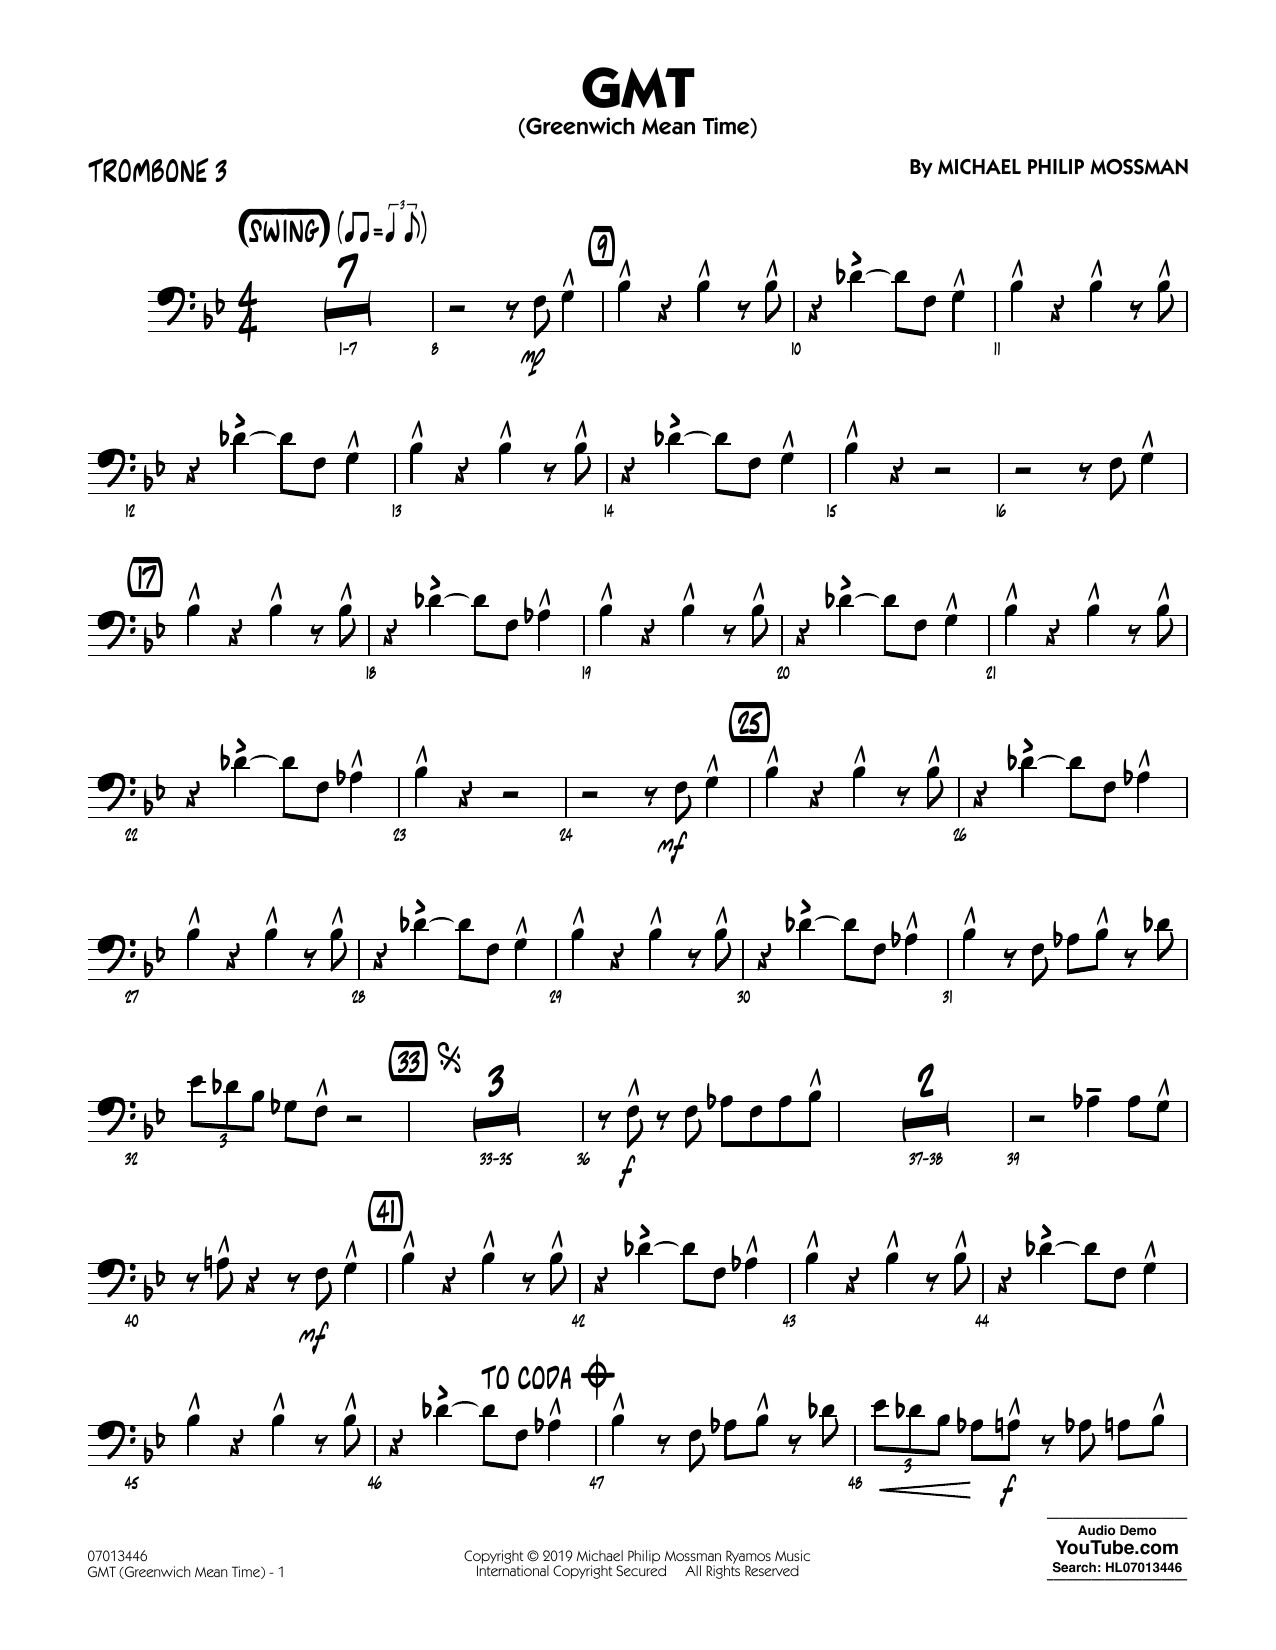 Michael Philip Mossman GMT (Greenwich Mean Time) - Trombone 3 sheet music notes and chords. Download Printable PDF.